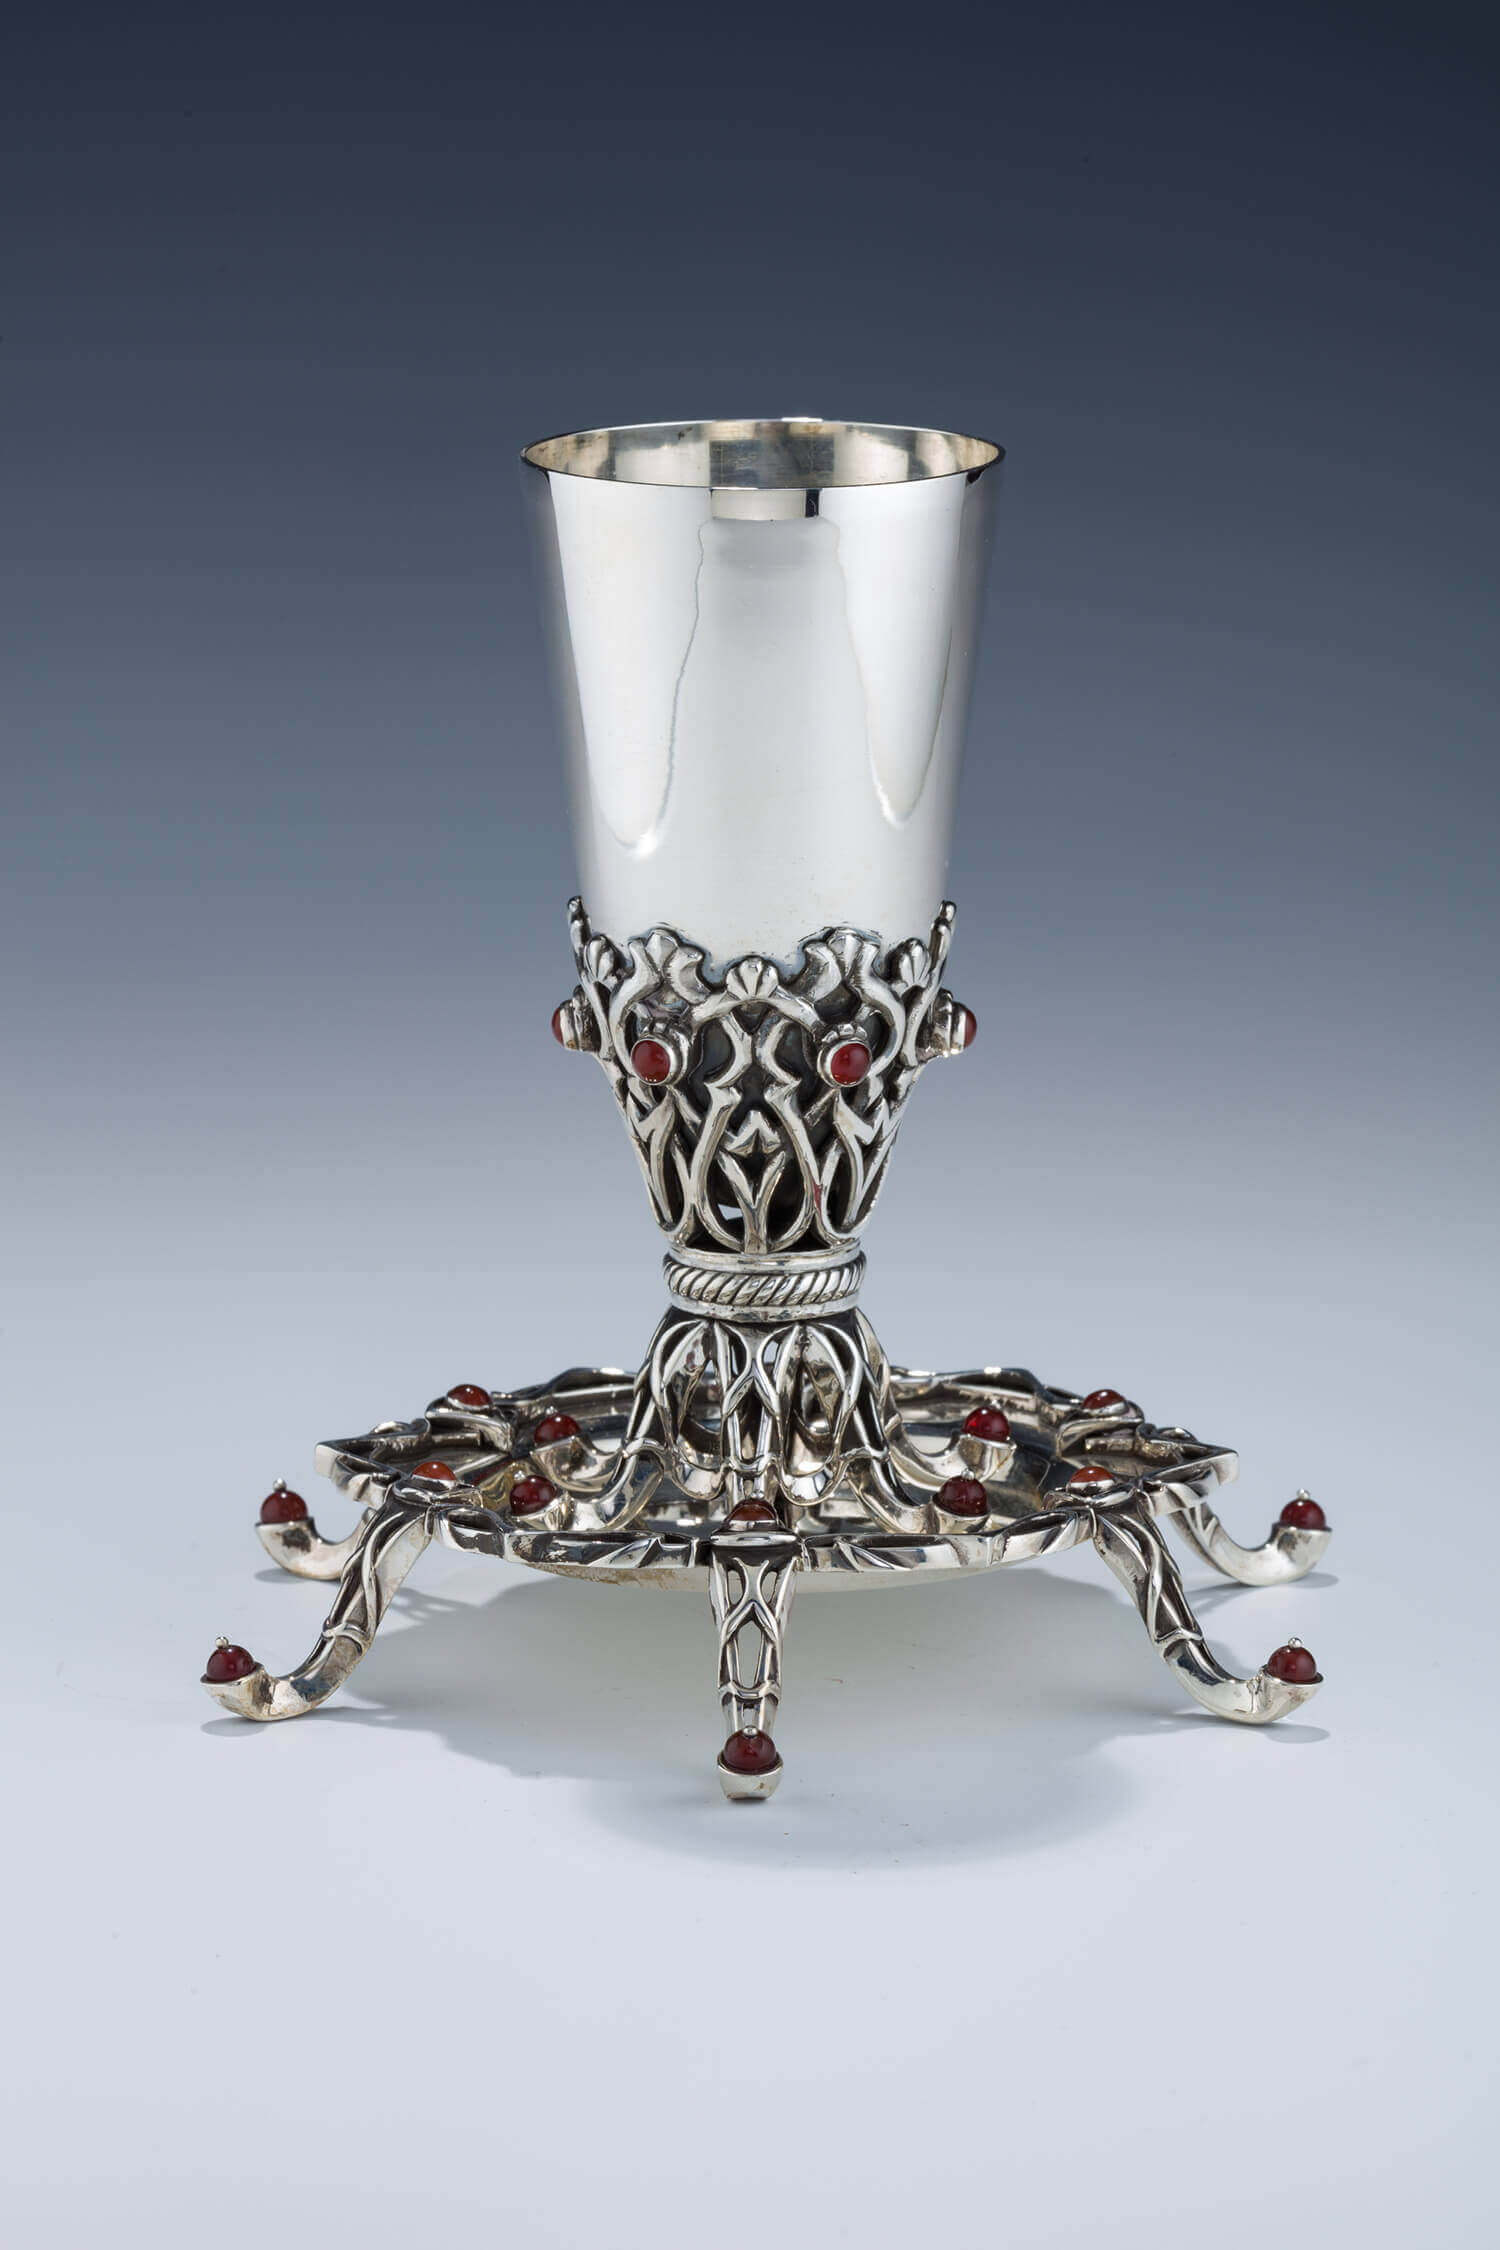 097. A STERLING SILVER KIDDUSH CUP BY BENNY DABBAH